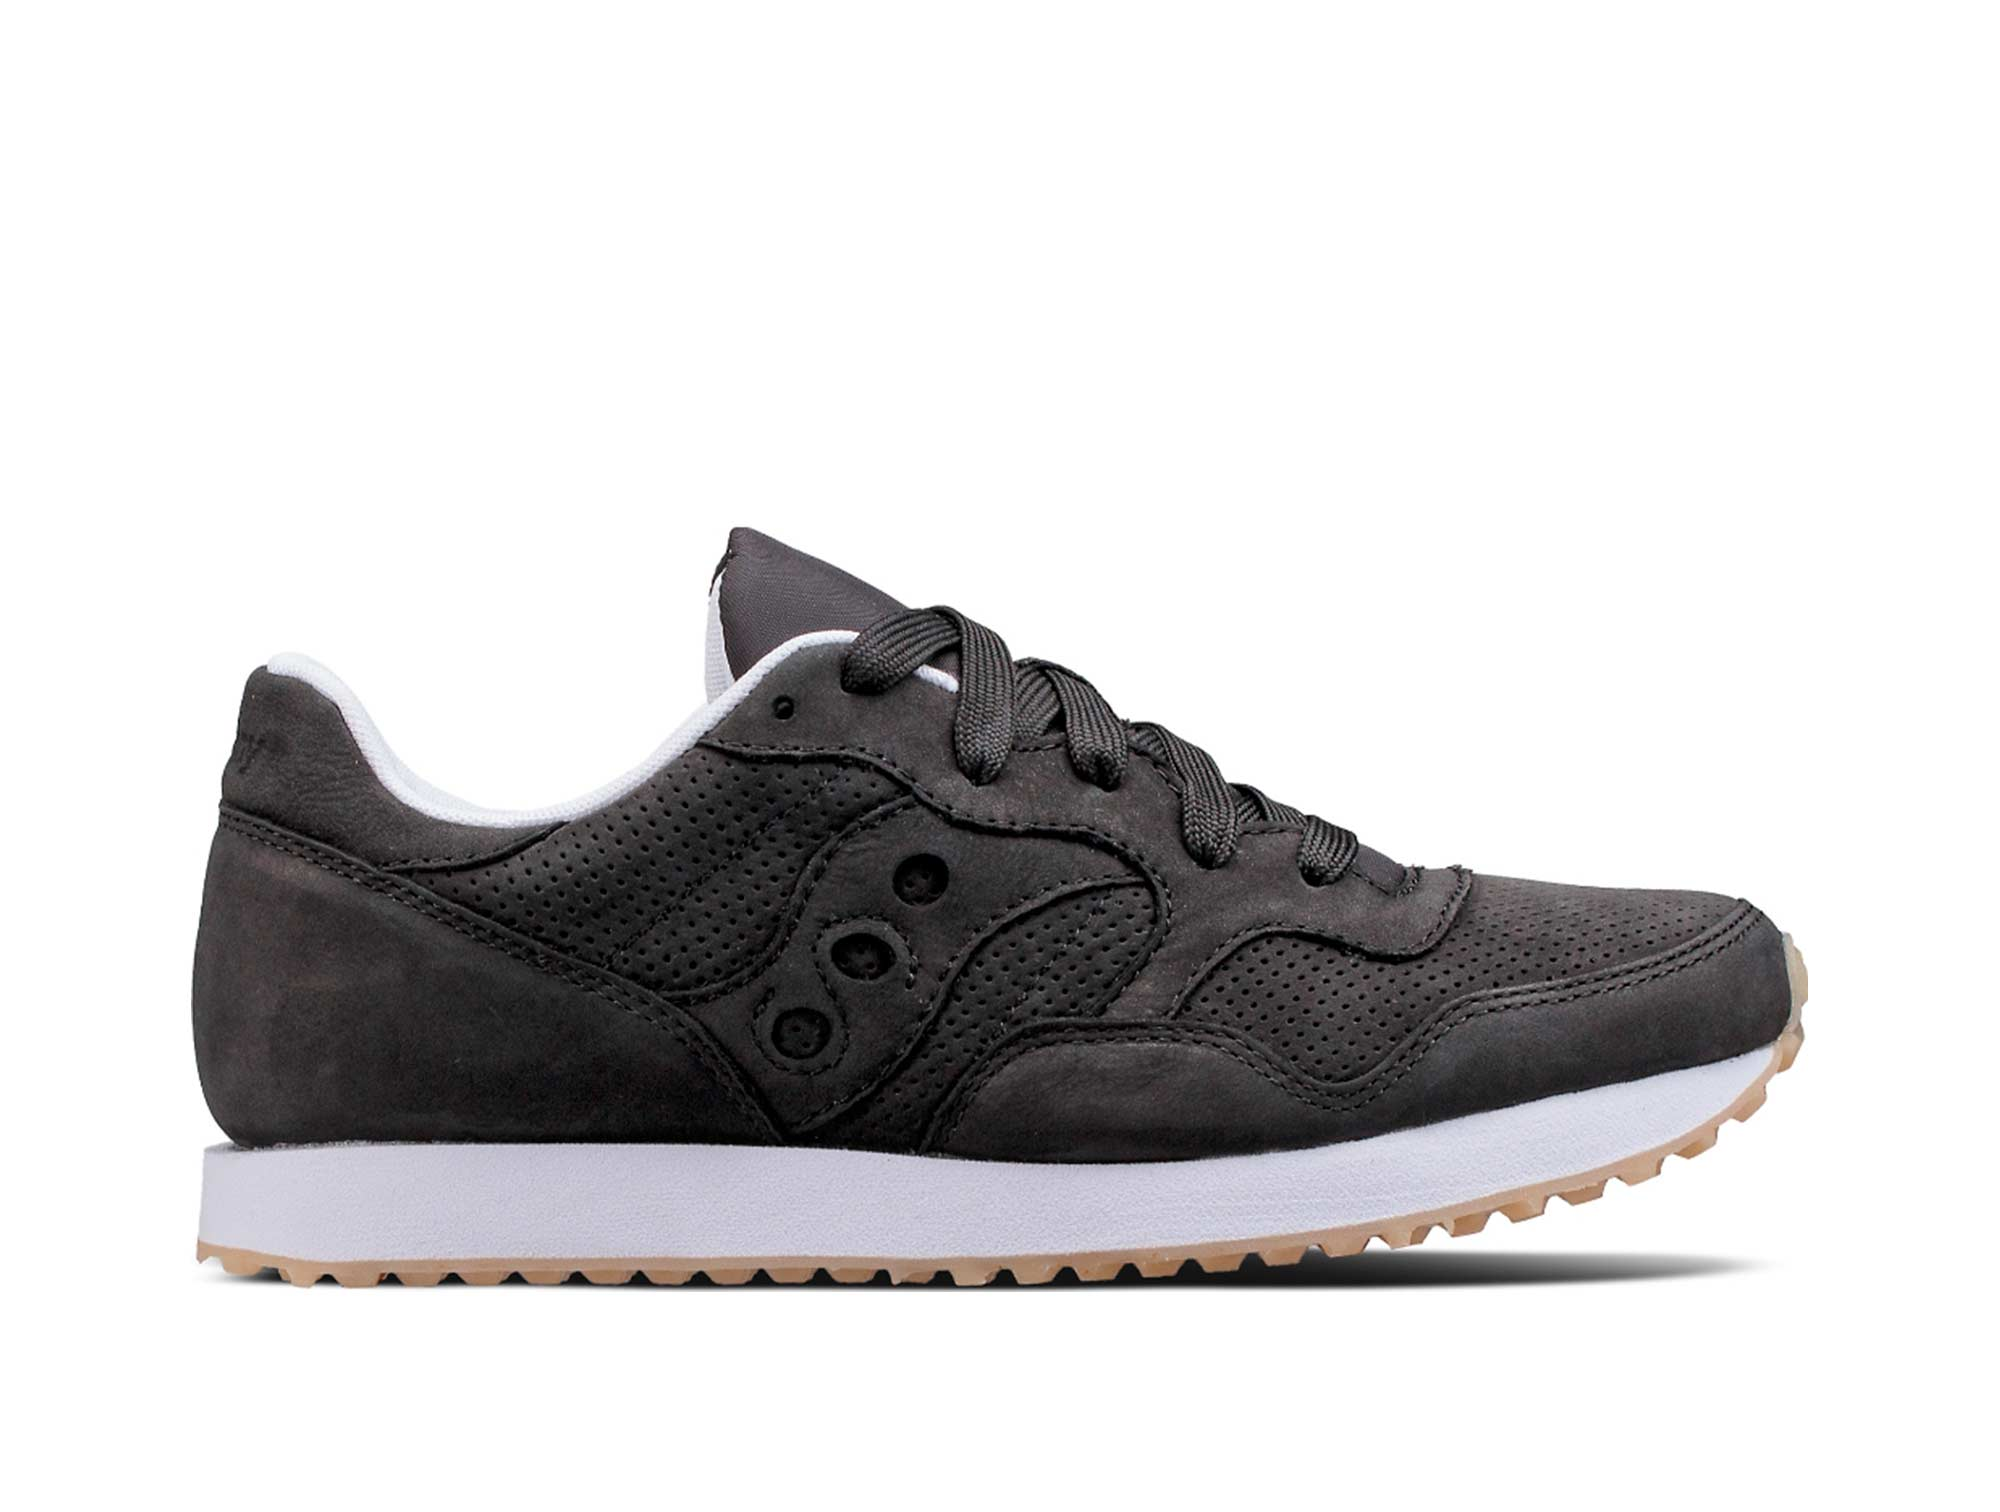 ZAPATILLA SAUCONY DXN TRAINER MUJER NEGRO